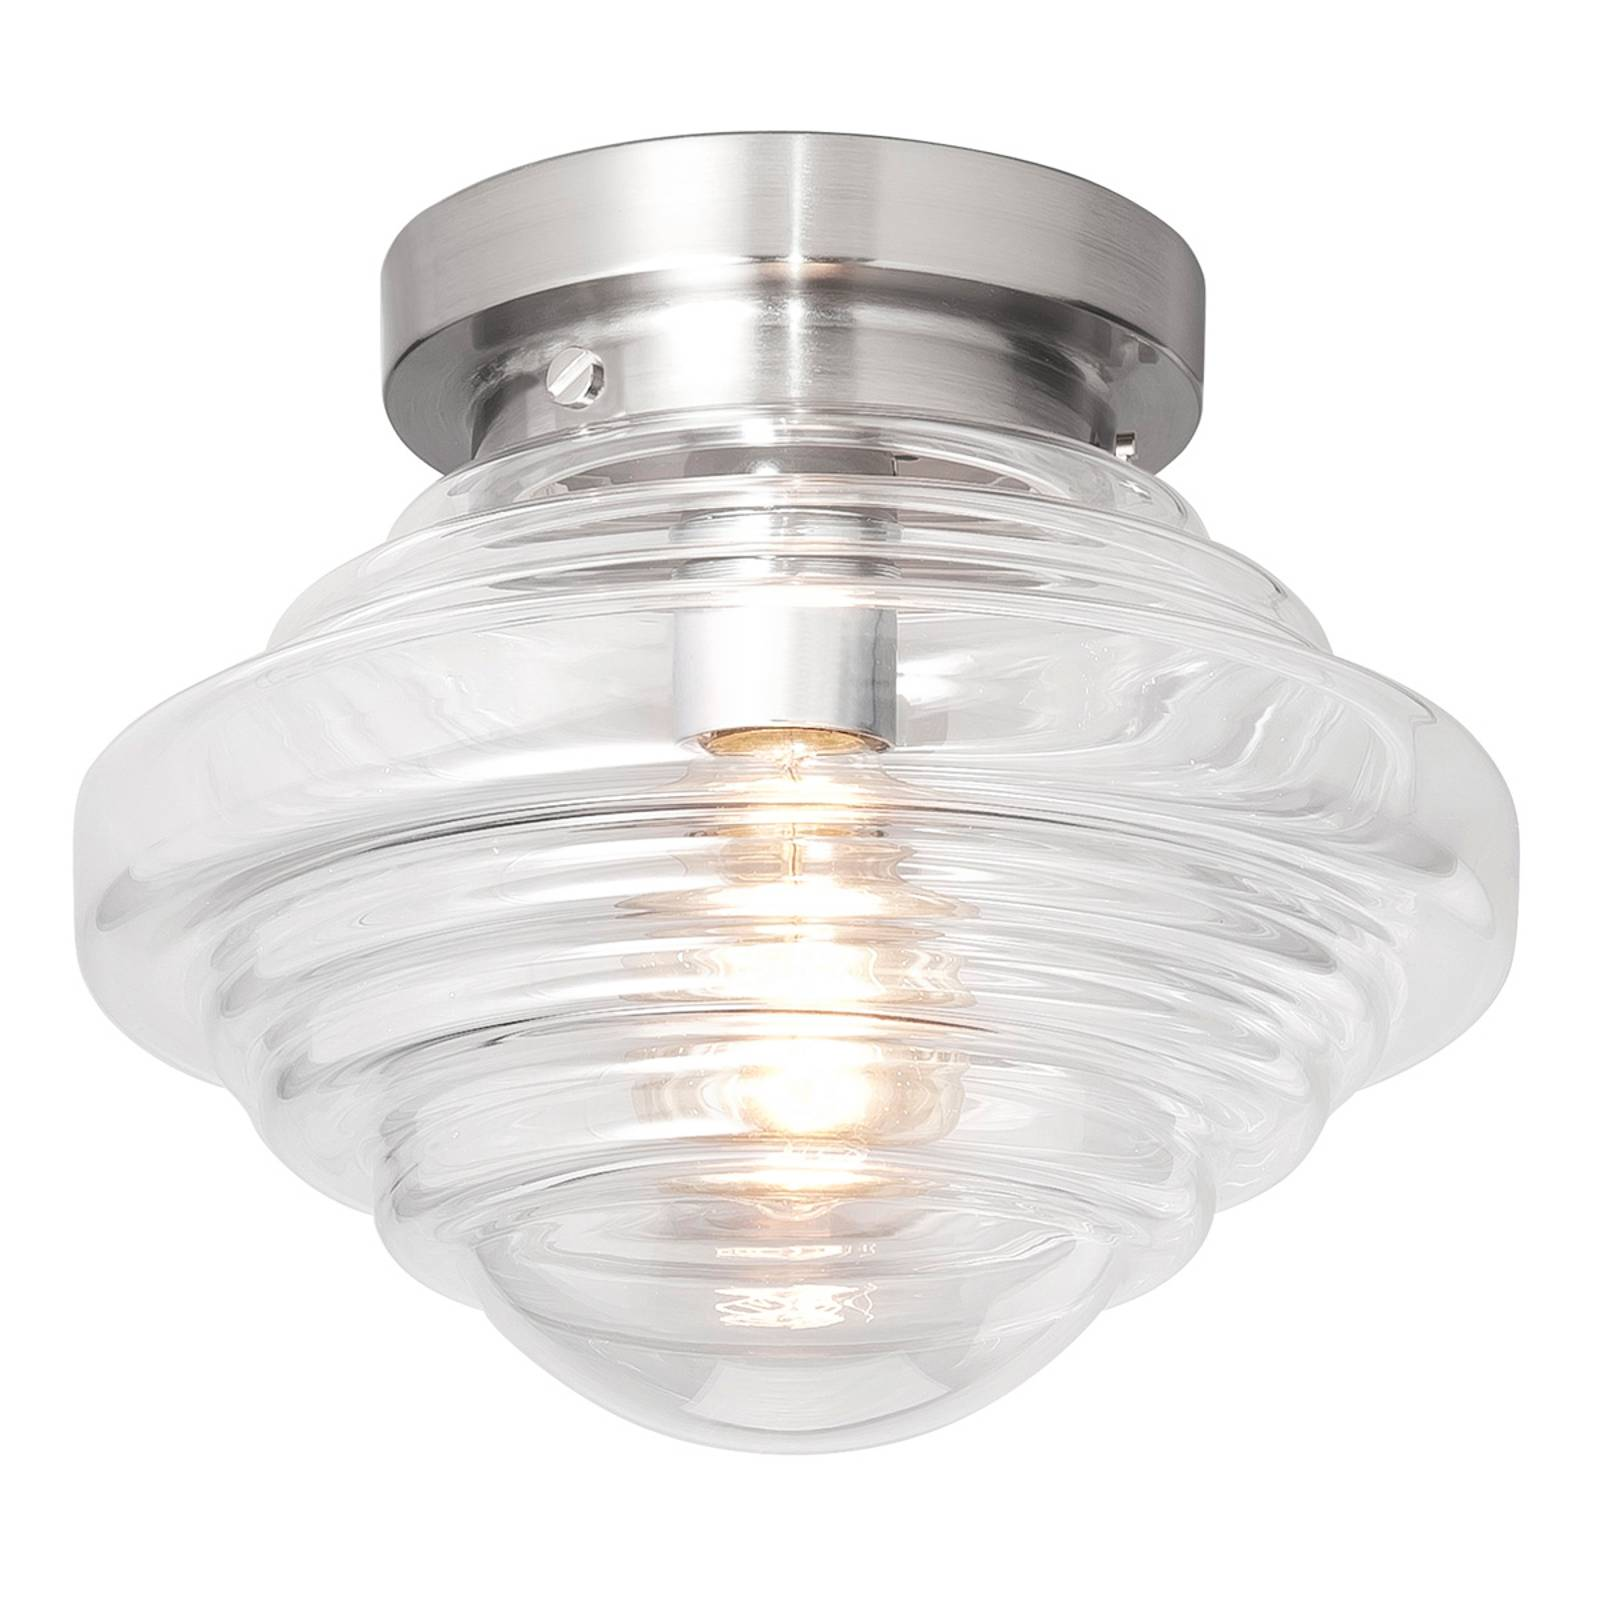 York glass ceiling light with a clear lampshade from Hight Light B.V.